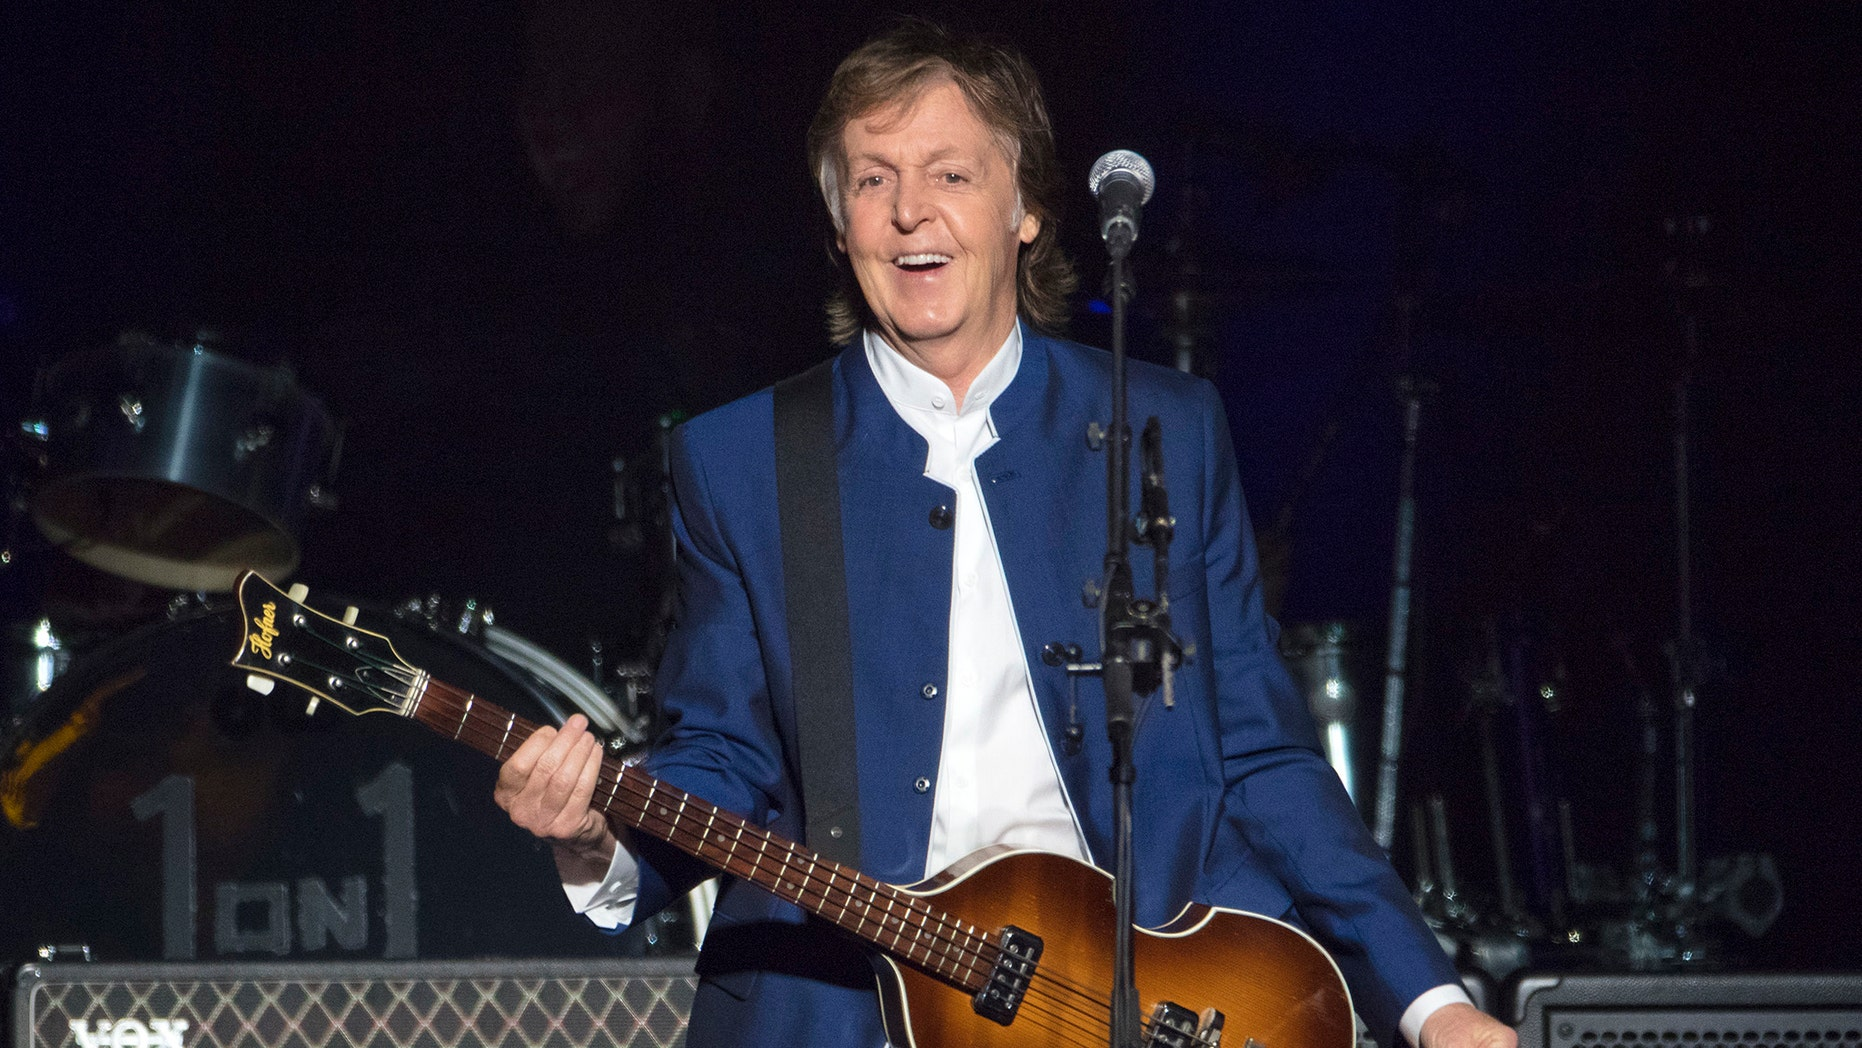 FILE - In this Monday, July 10, 2017 file photo, Sir Paul McCartney performs at Amalie Arena in Tampa, Fla. Most hosts would be quite happy to have Paul McCartney come to a shindig. Paul McCartney's Christmas message to his fans around the world: Don't be like me and eat and drink too much. The 76-year-old former Beatle tweeted his lighthearted holiday wishes Tuesday, Dec. 25, 2018 illustrated with photos from his younger days.